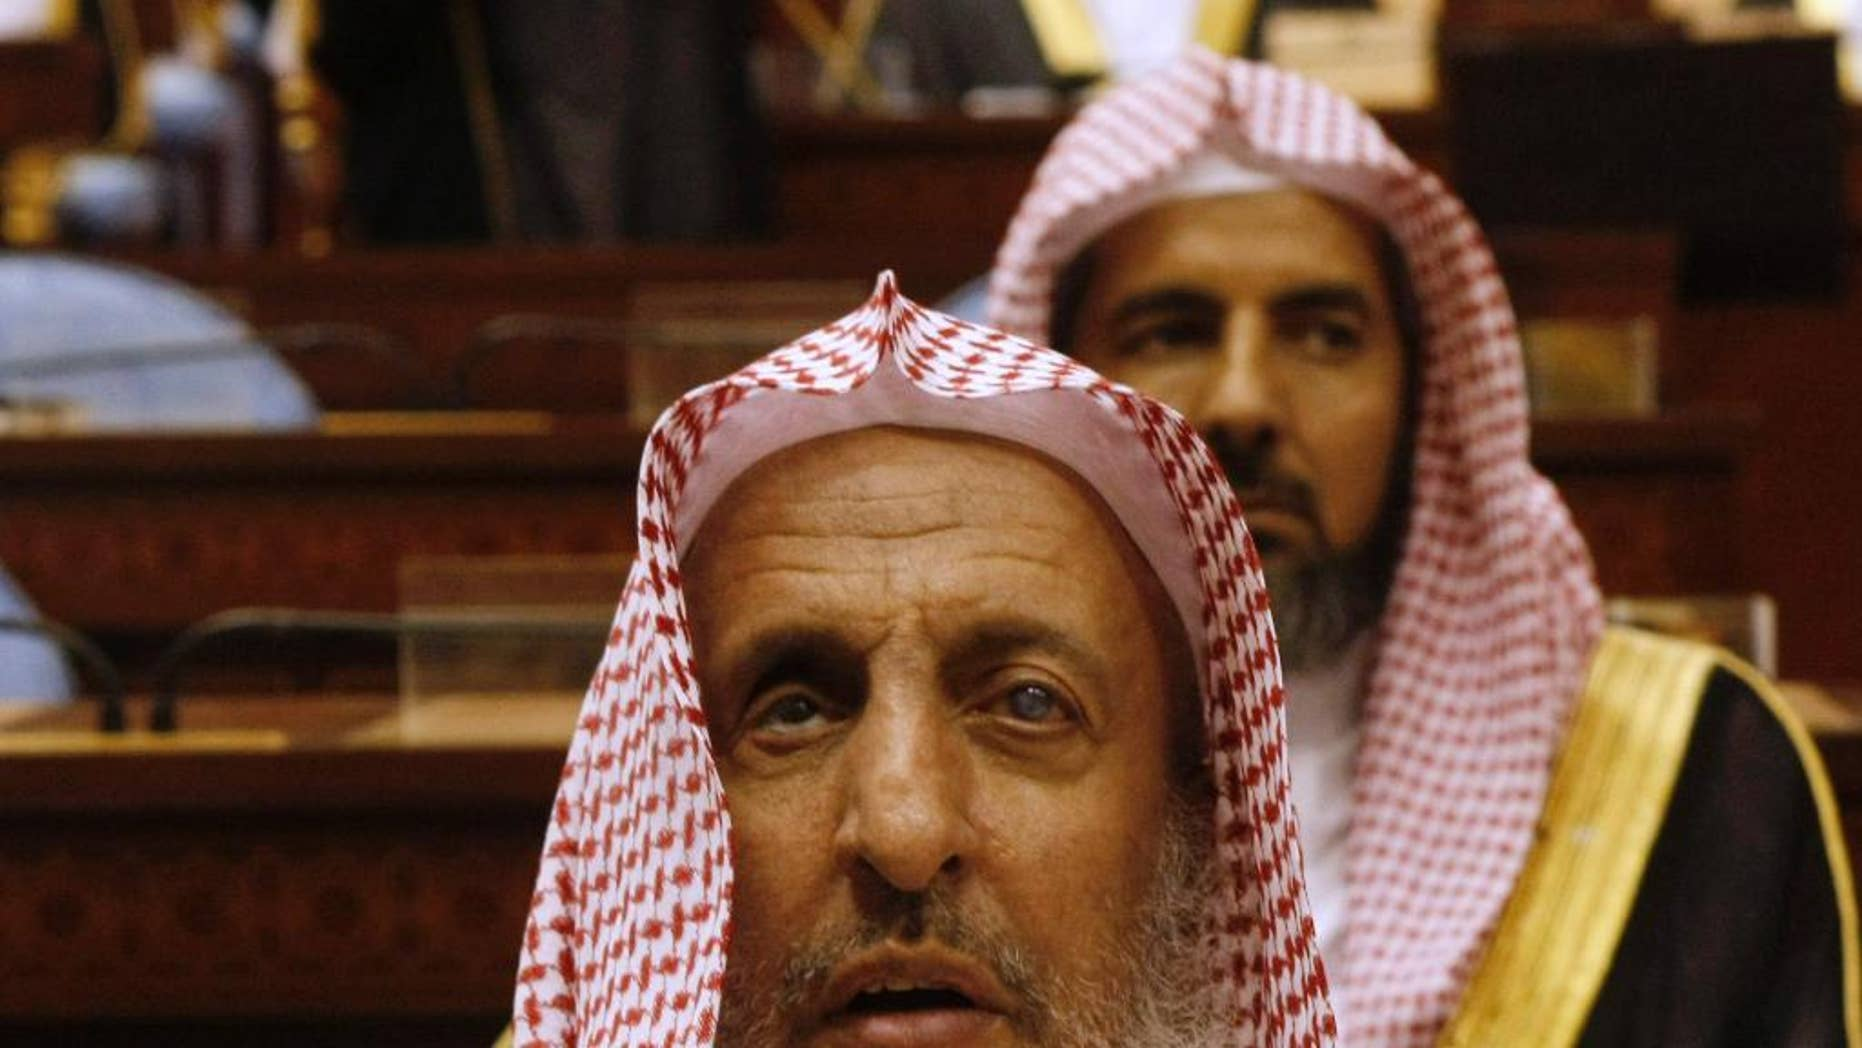 "FILE - In this Tuesday, March 24, 2009 file photo, Sheikh Abdul Aziz al-Sheikh, the Saudi grand mufti listens to a speech of King Abdullah of Saudi Arabia at the Consultative Council in Riyadh, Saudi Arabia. Saudi Arabia's top cleric has said that Iranians are ""not Muslims,"" adding fuel to a spat between the two regional powers a day after Iran's supreme leader accused the kingdom of mistreating pilgrims injured during last year's Hajj stampede. (AP Photo/Hassan Ammar, File)"